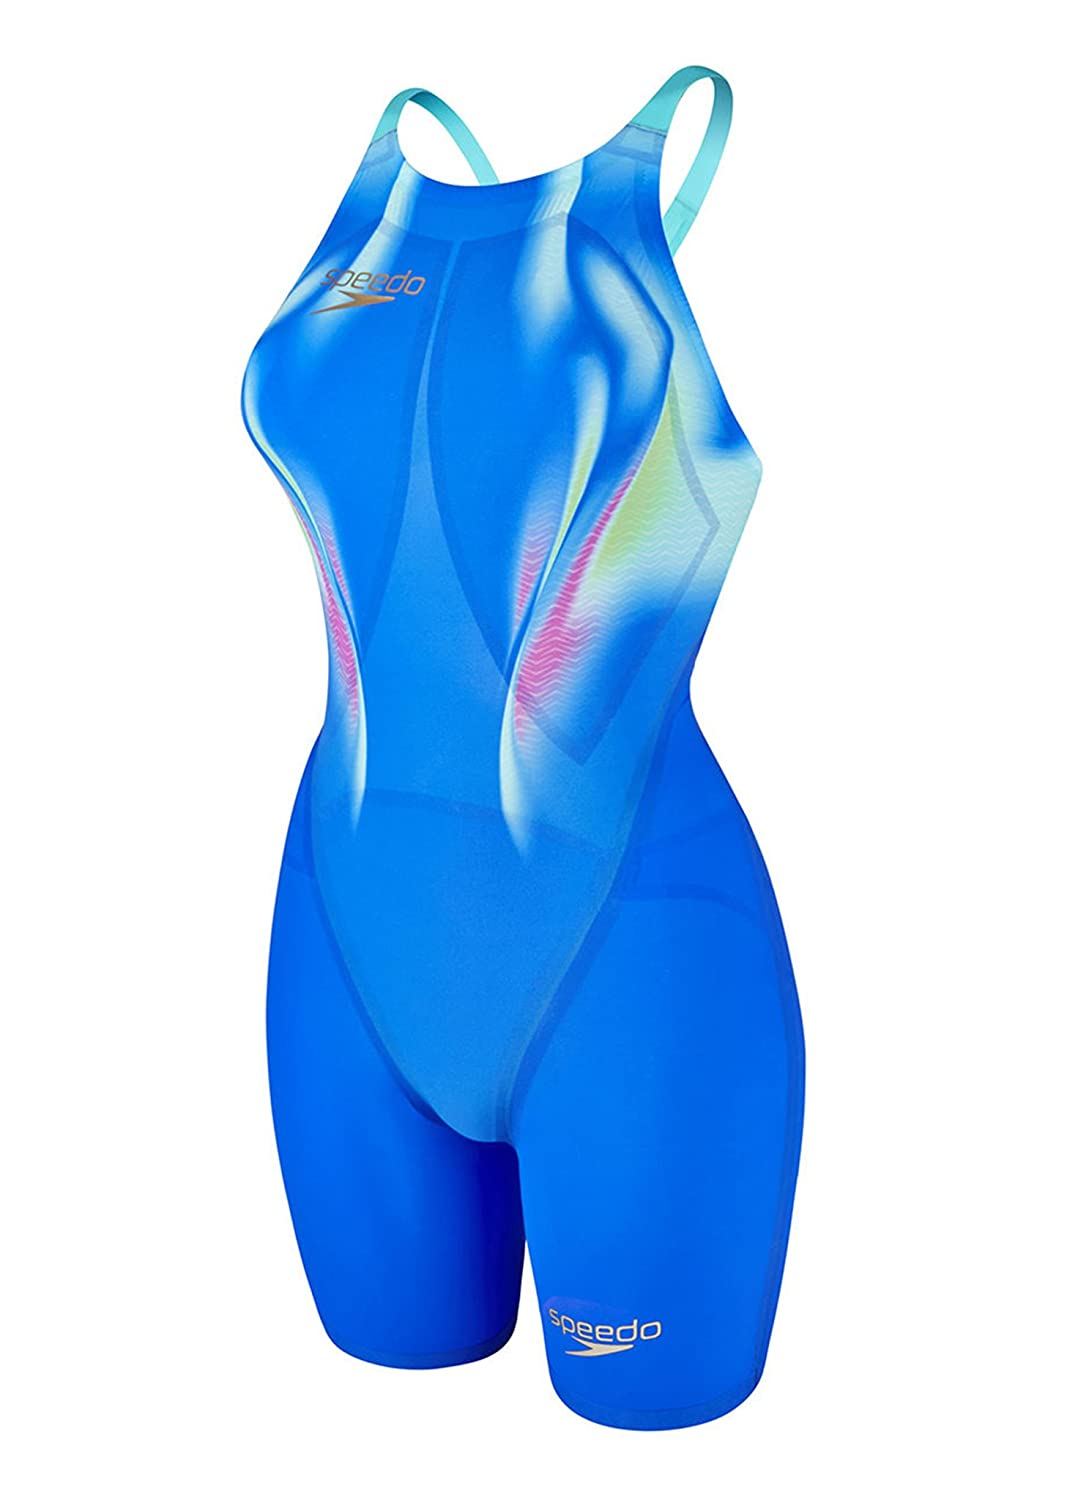 Speedo LZR Racer Elite 2 Openback KneeSkin - Beautiful Blue / Bali Blau Größe 16